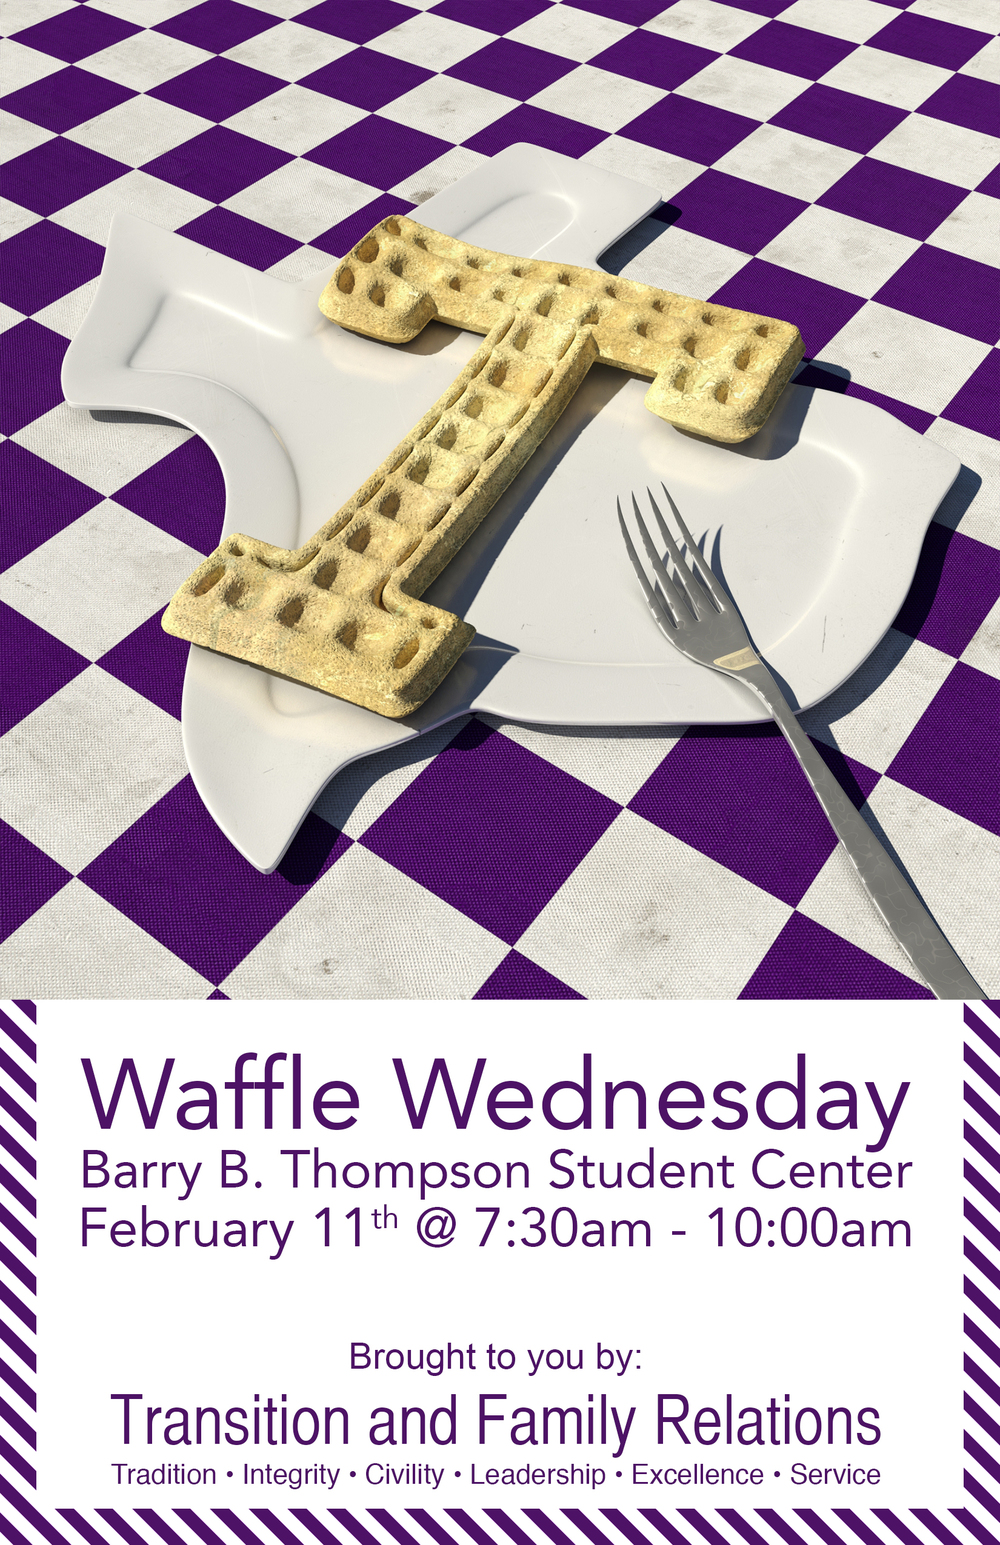 2015 Waffle Wednesday Poster — The first poster and one of my first projects ever at Student Publications. I made the waffle imagery with 3sd Max, a CG software package. The typography, unfortunately, was an afterthought of all the work I did for the rendering and thus is lacking a little design care.